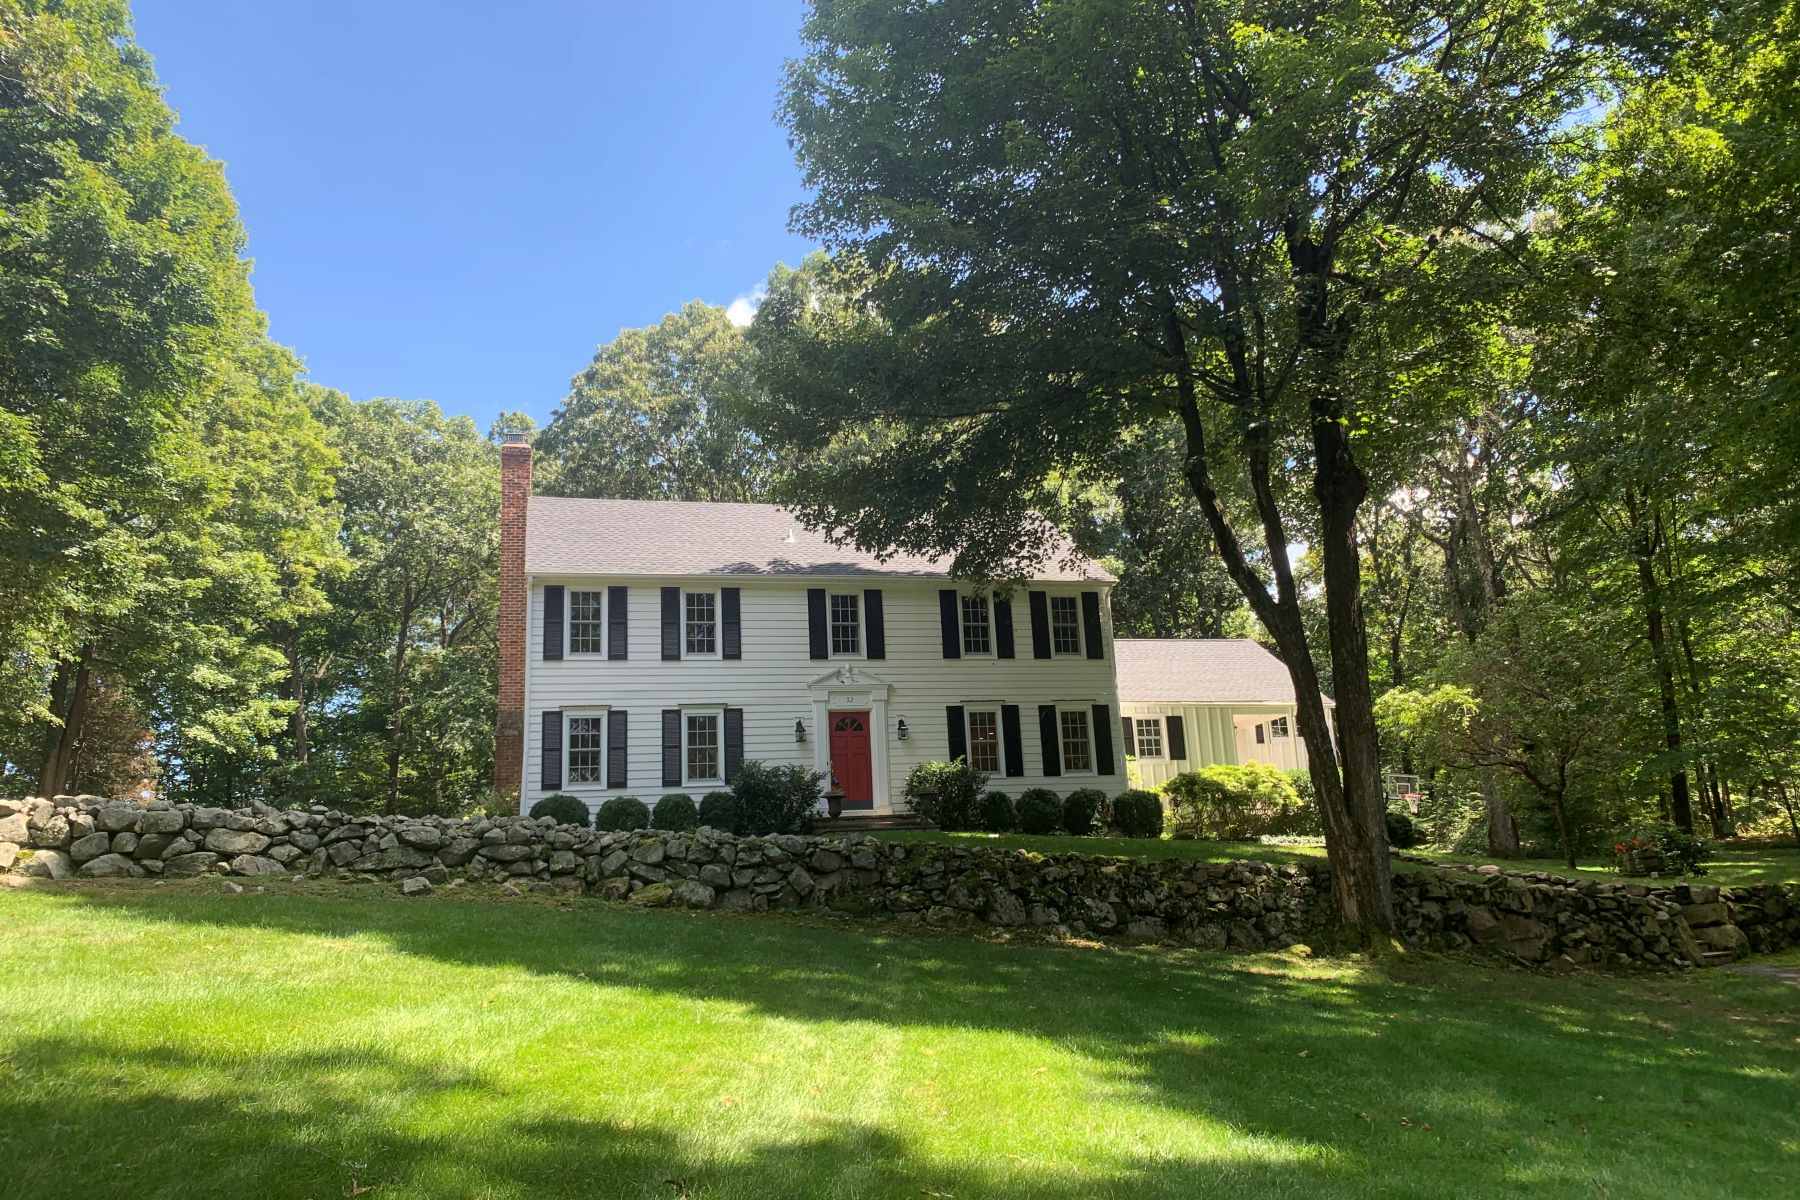 Single Family Homes for Active at 52 Edgewater Drive Wilton, Connecticut 06897 United States